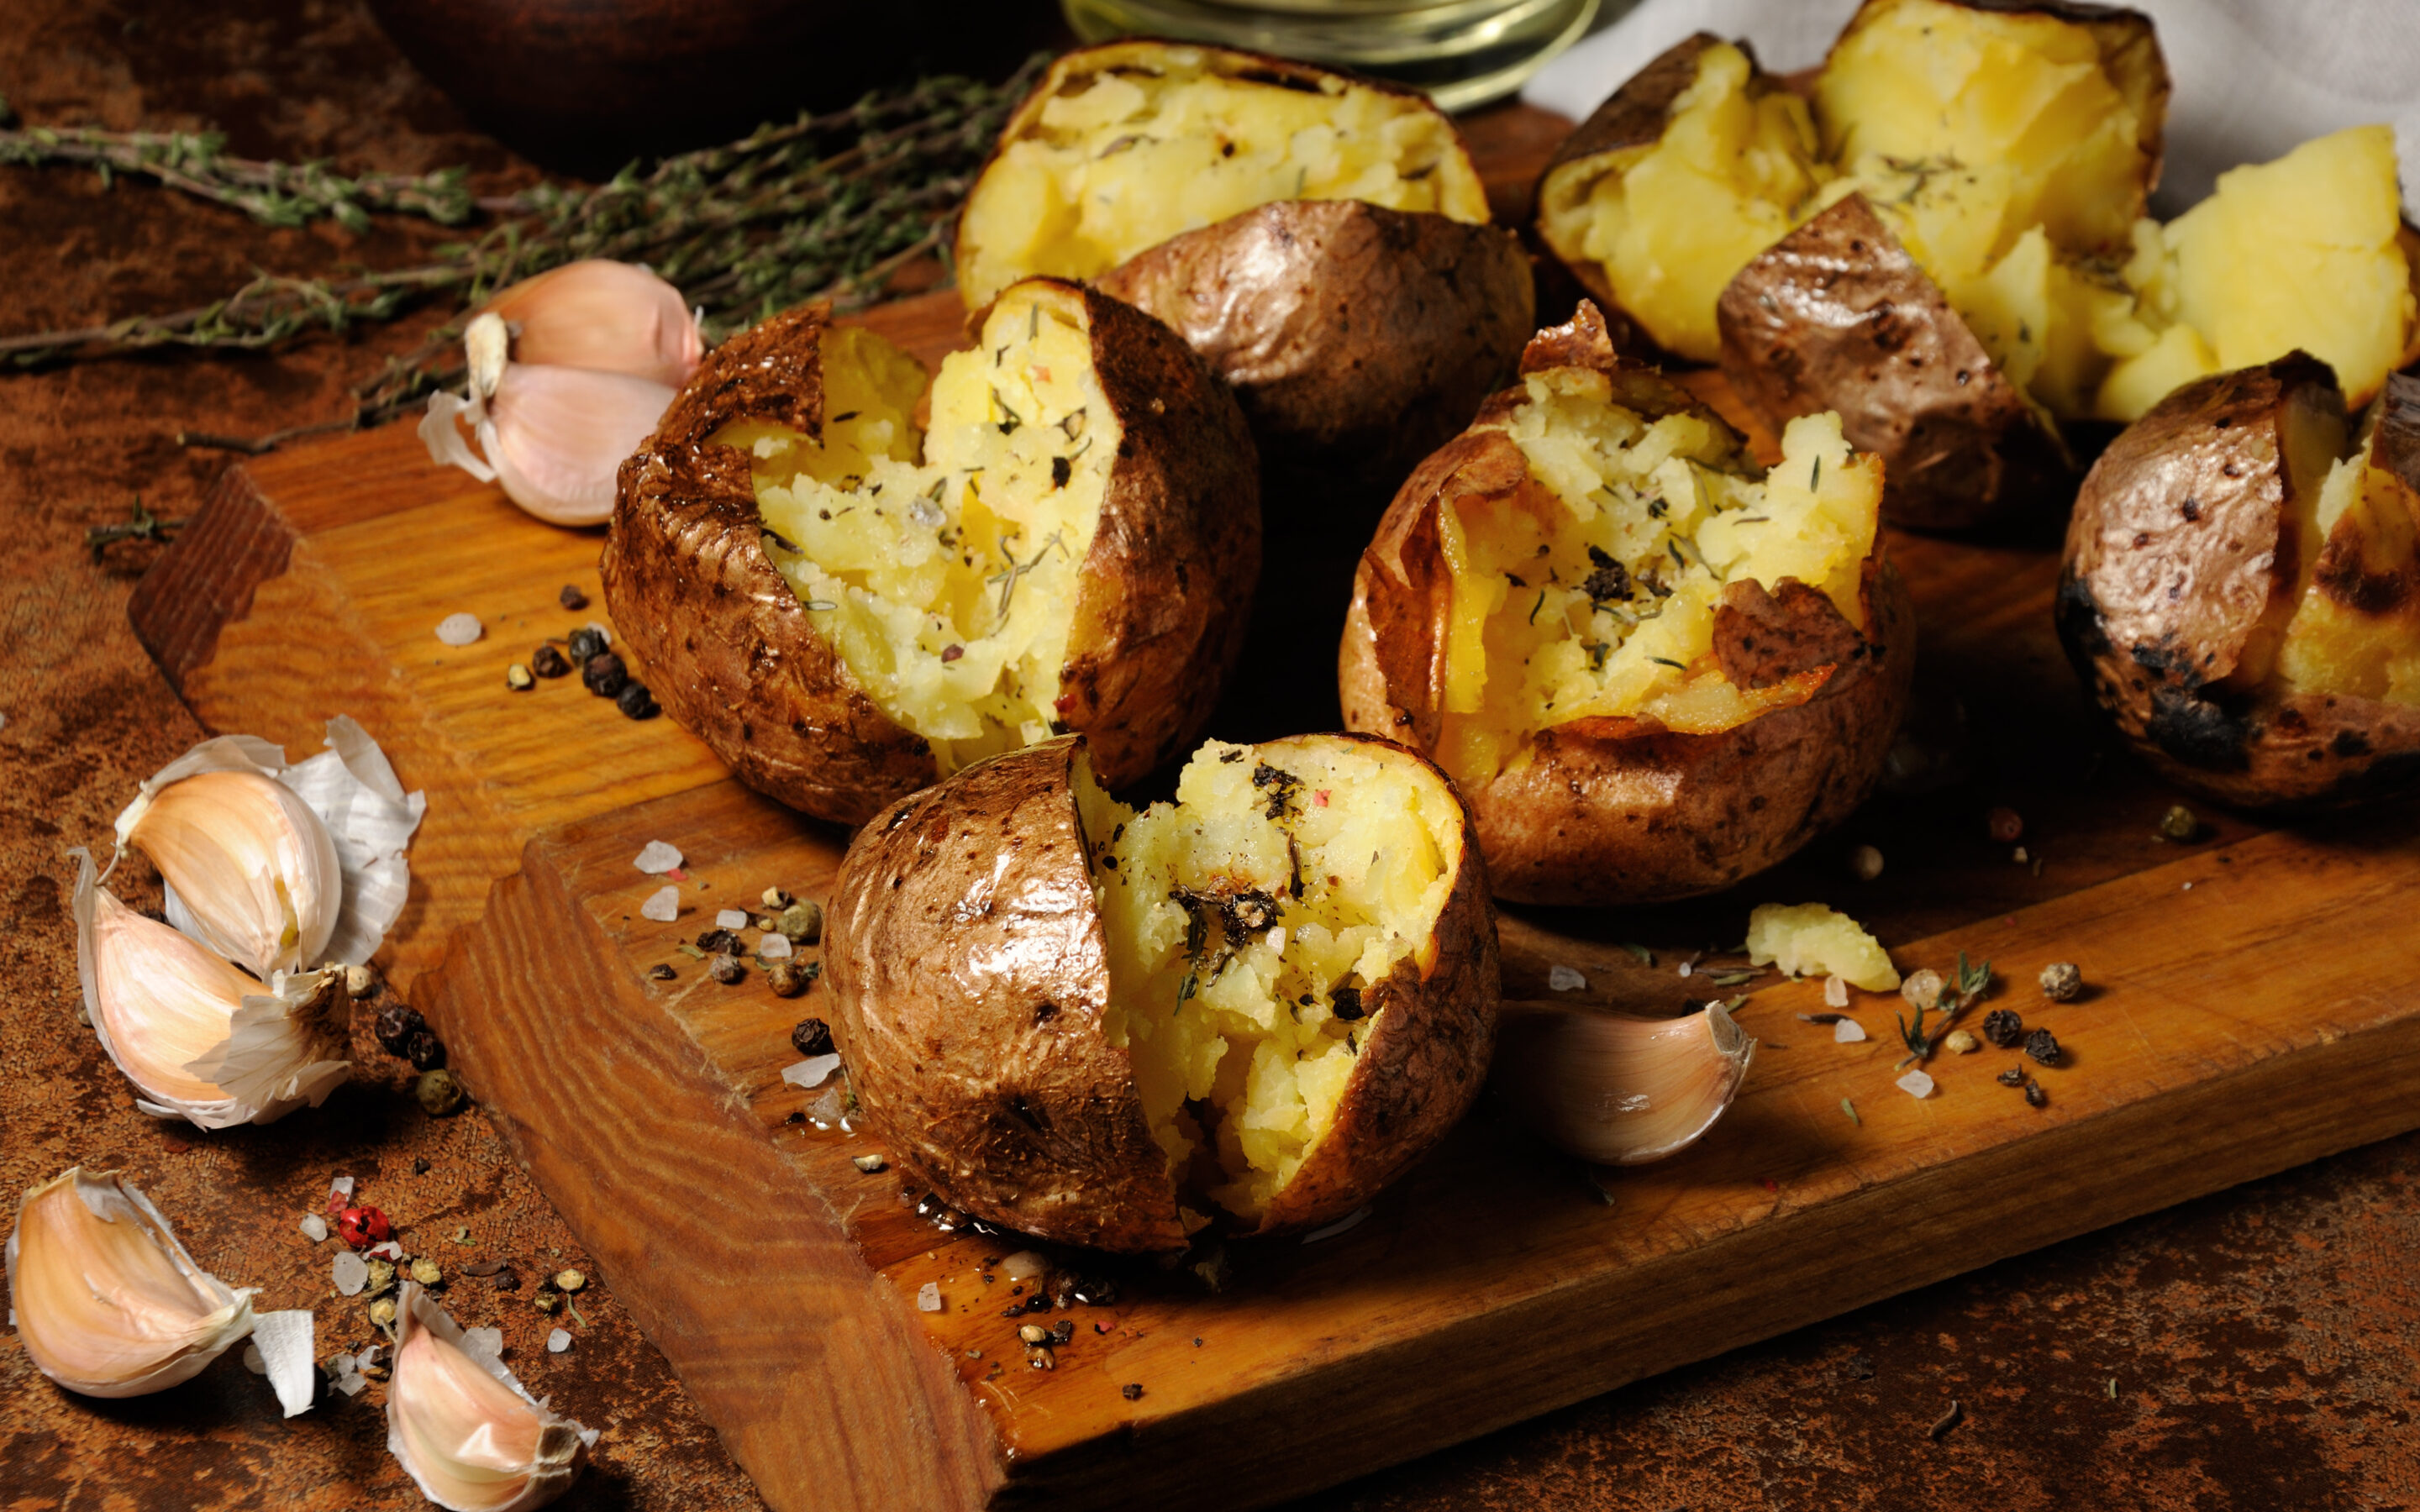 Best Baked Potatoes on a wooden board with spices